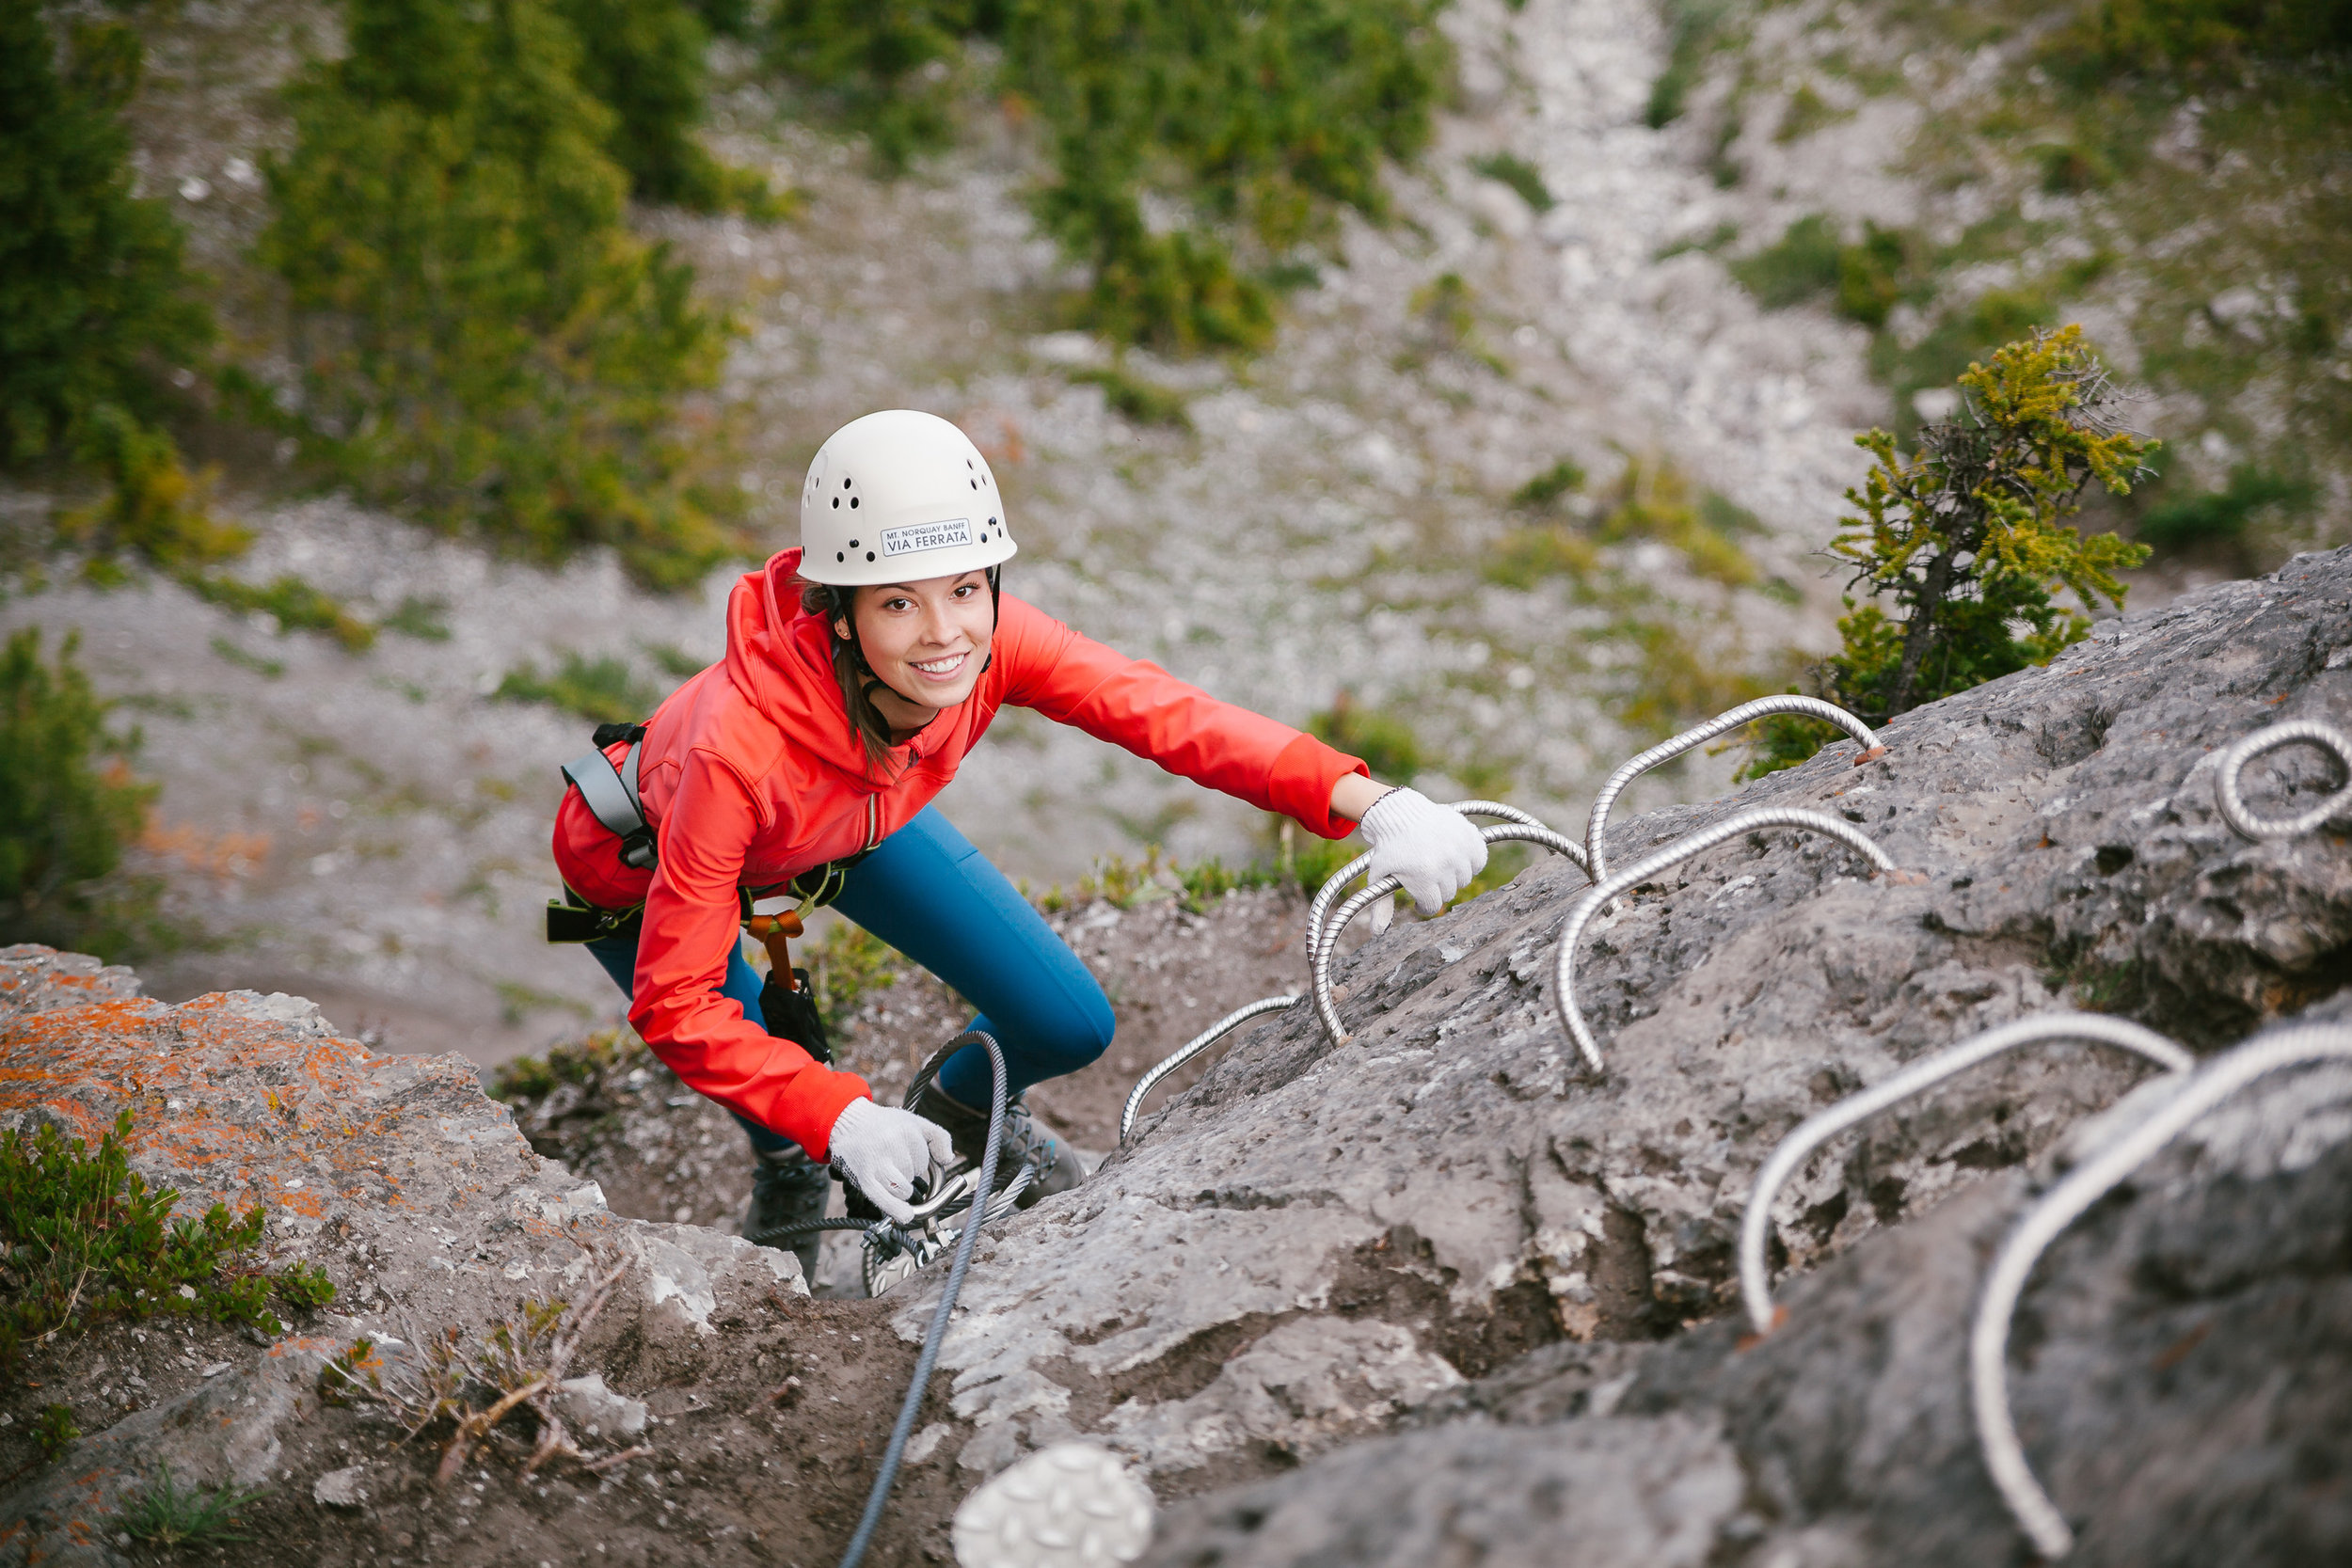 Banff Norquay – Via Ferrata